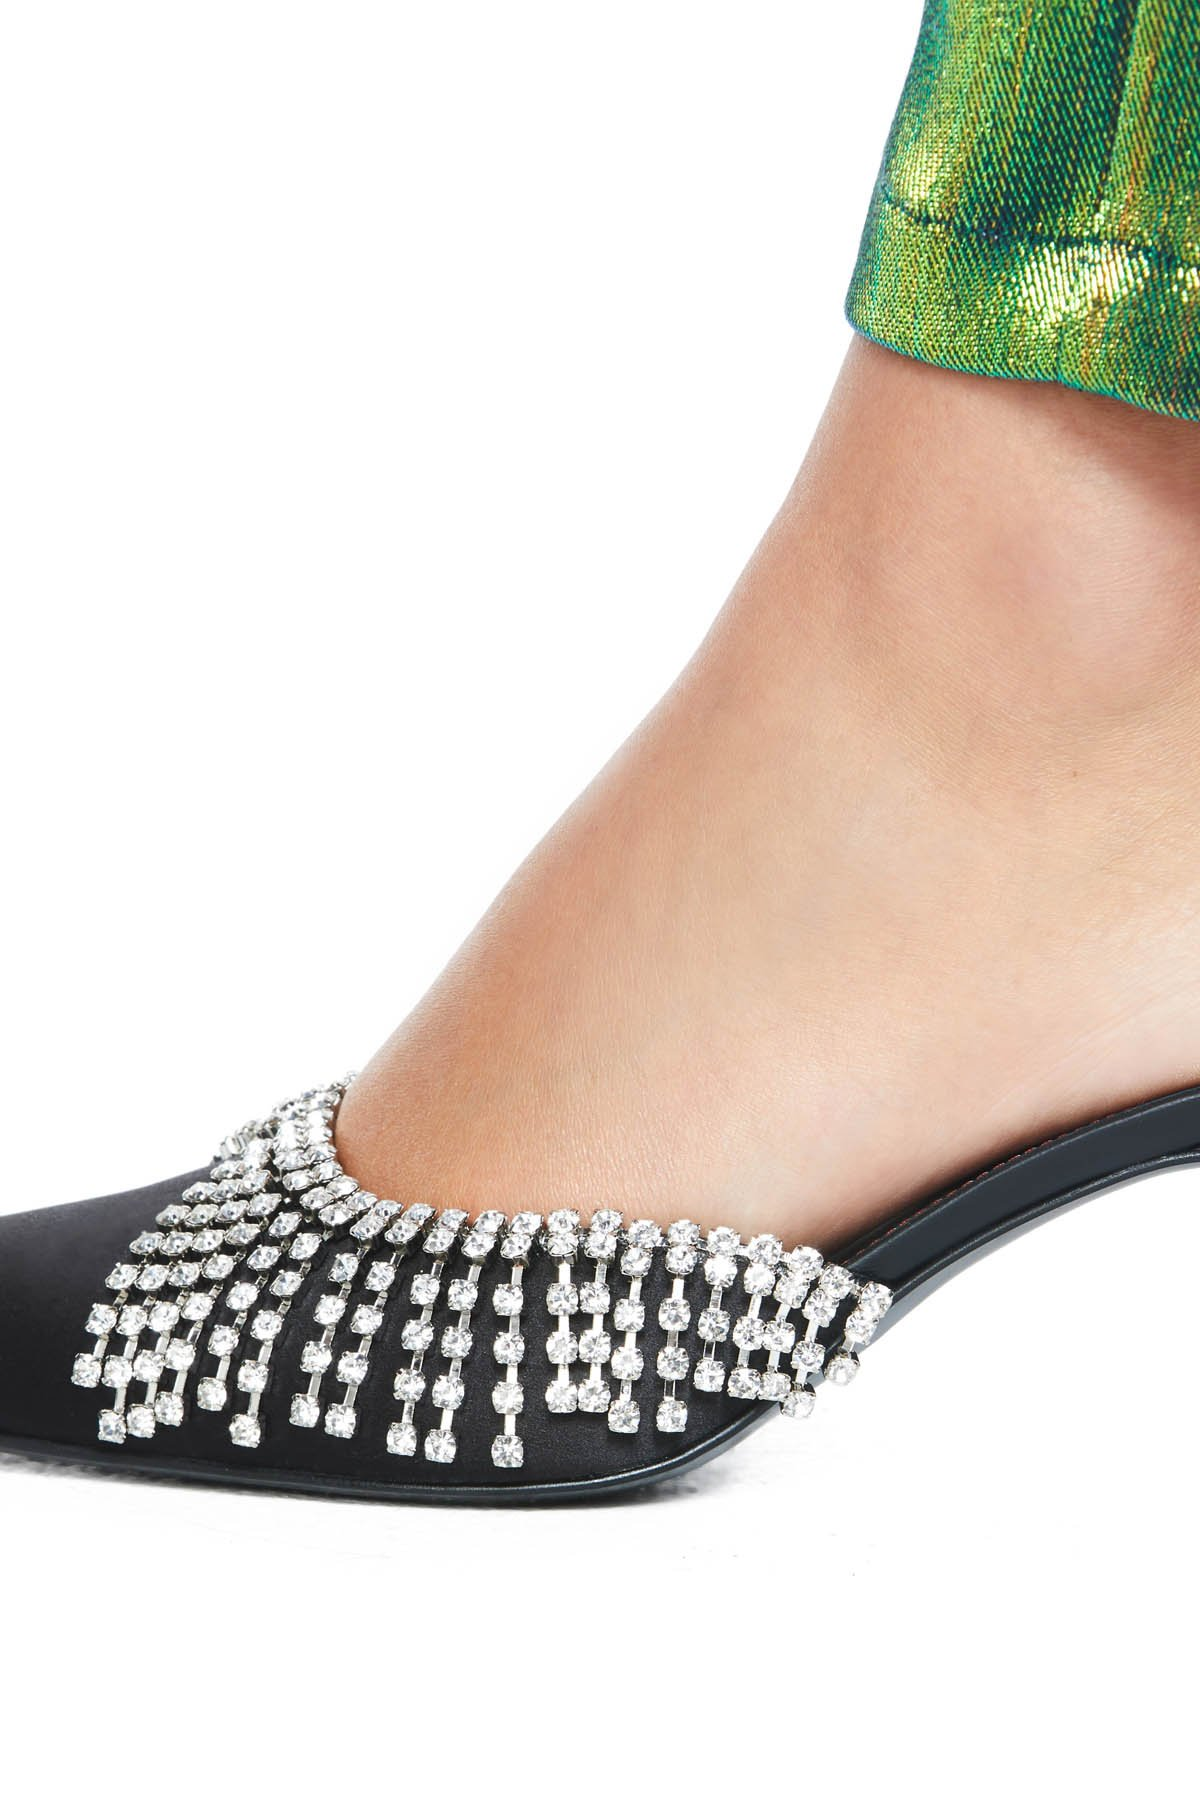 Pointed toe kitten heel with crystal chandelier detailing. 65MM heel. Available in Black.